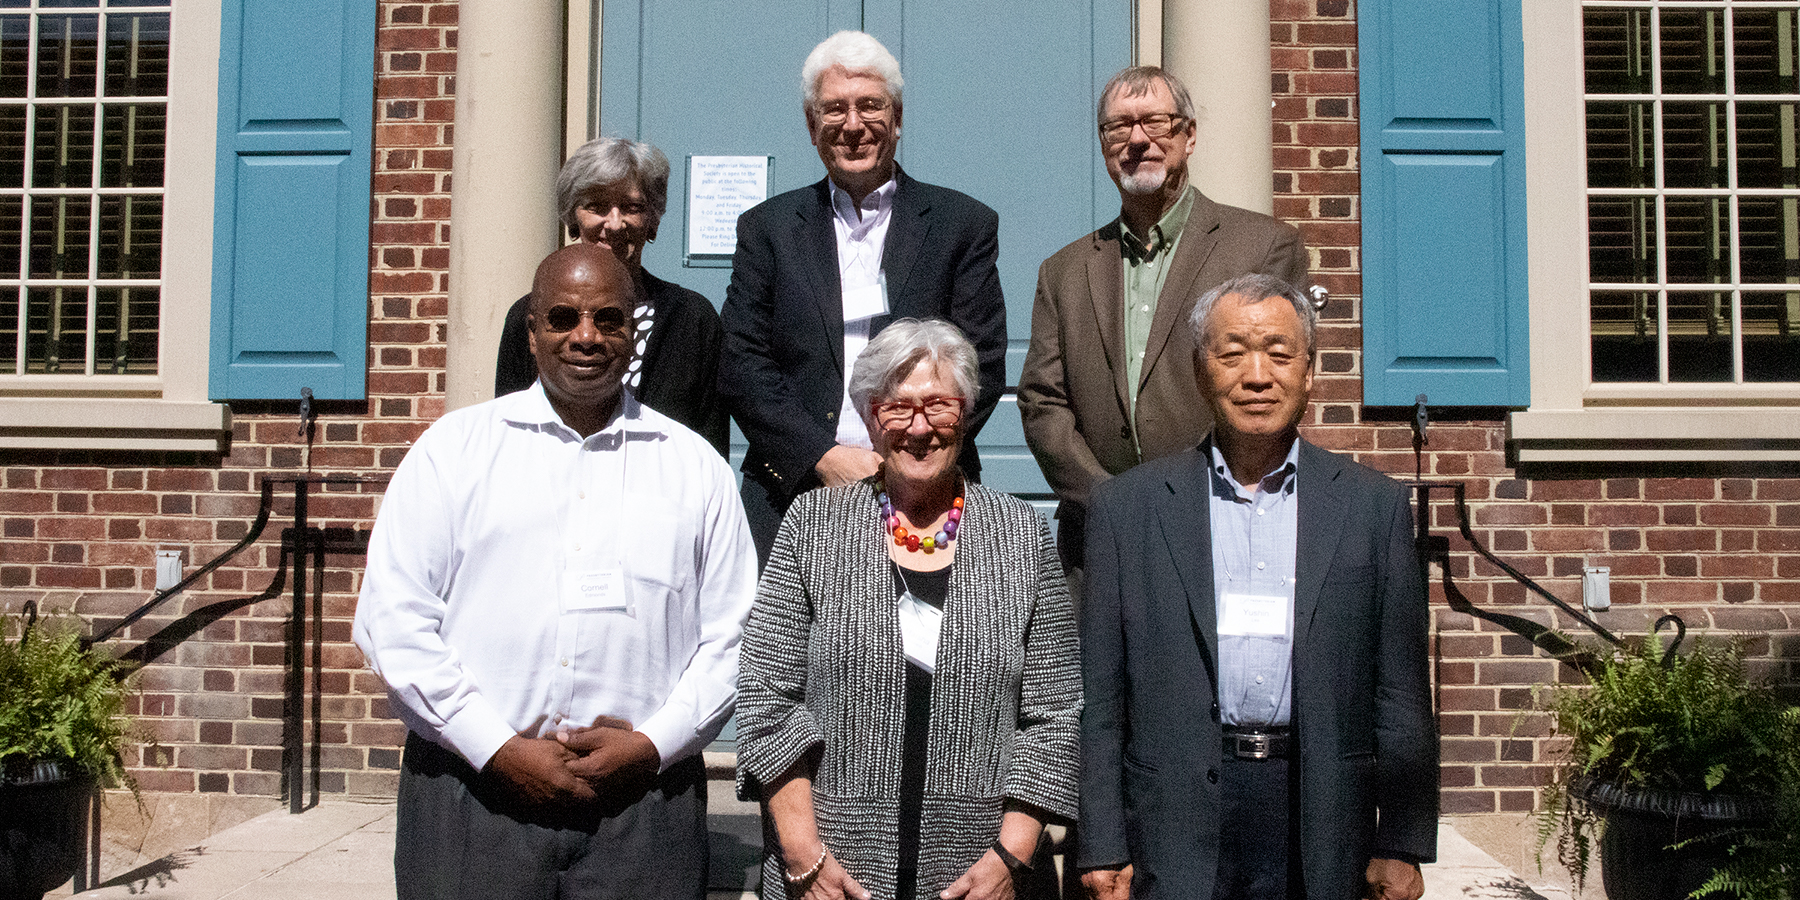 New PHS Board members, September 2019. Front (l to r): Rev. Dr. Cornell Edmonds, Marsha Heimann, Dr. Yushin Lee; Back (l to r): Rev. Cindy Jarvis, Mike Meloy, Tim Hoogland